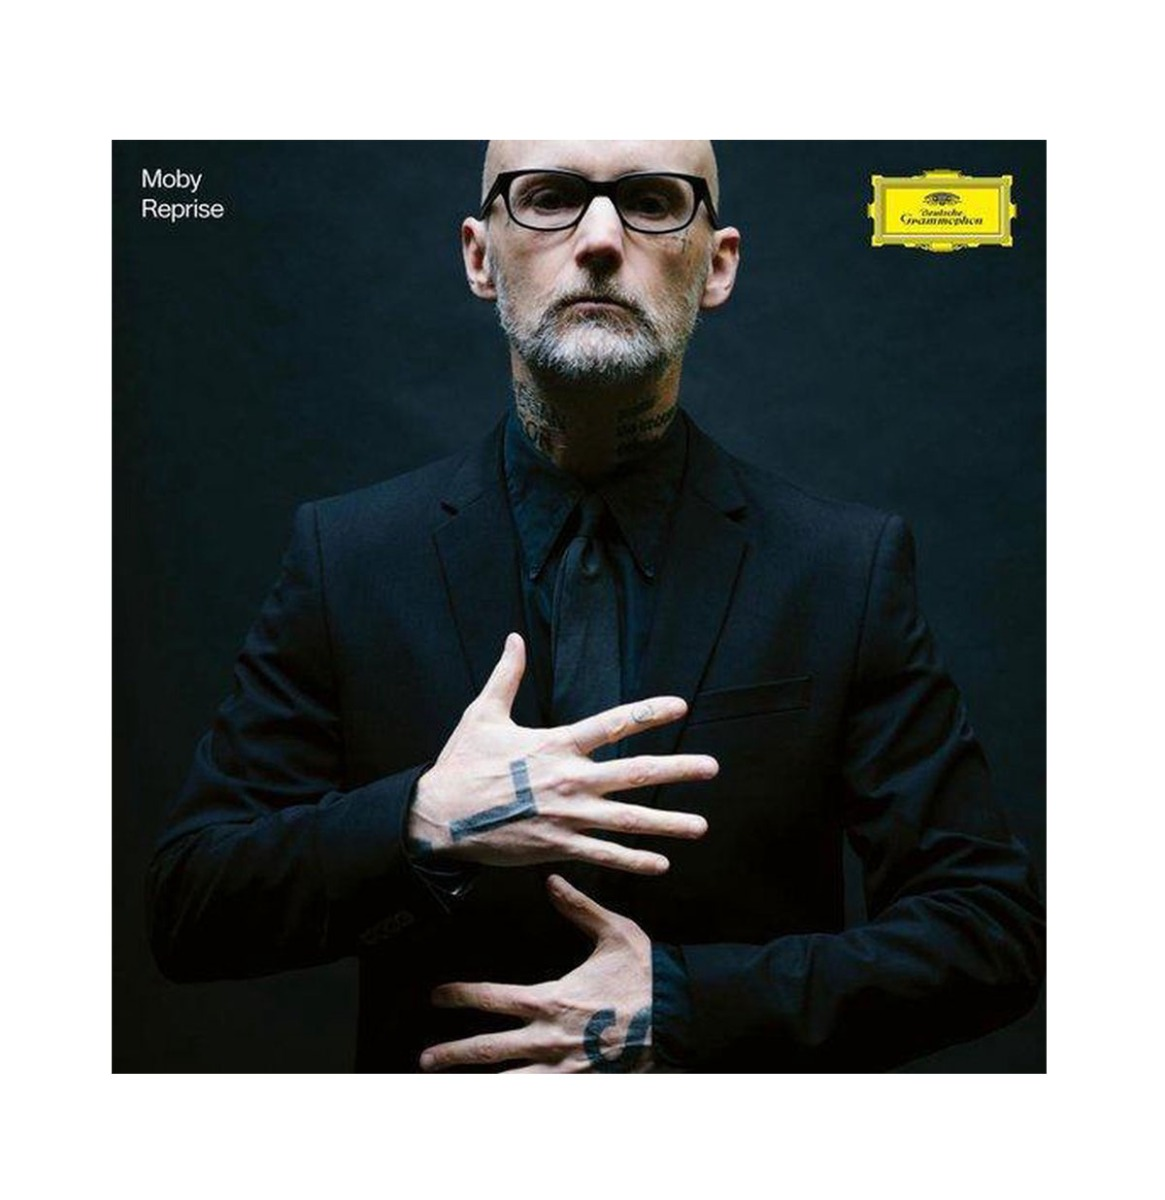 Moby - Reprise Limited Edition 2 LP Colored Vinyl